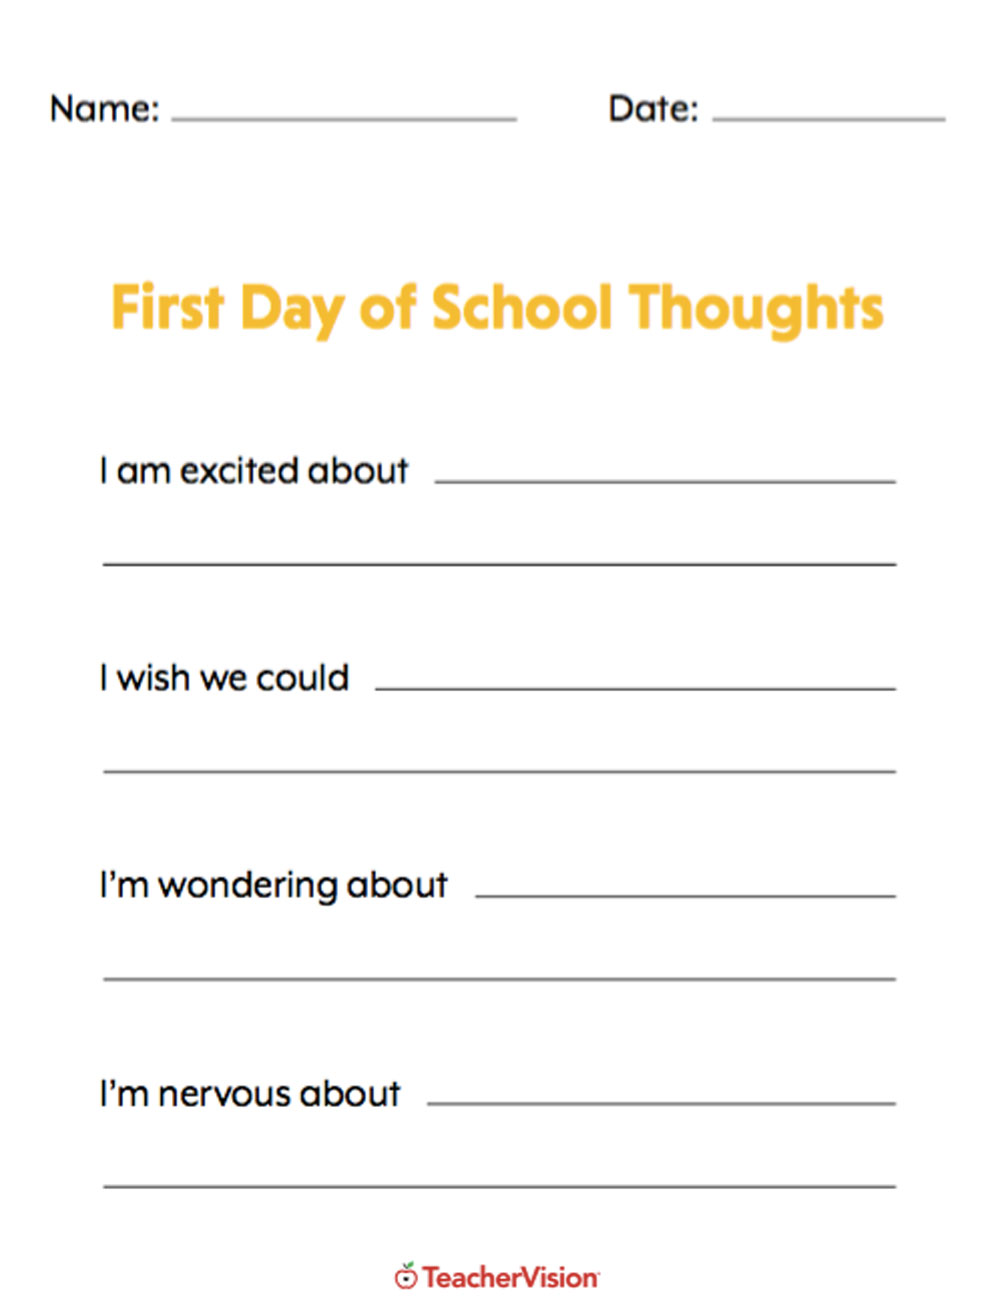 An activity to support students to share how they are feeling the first day of school